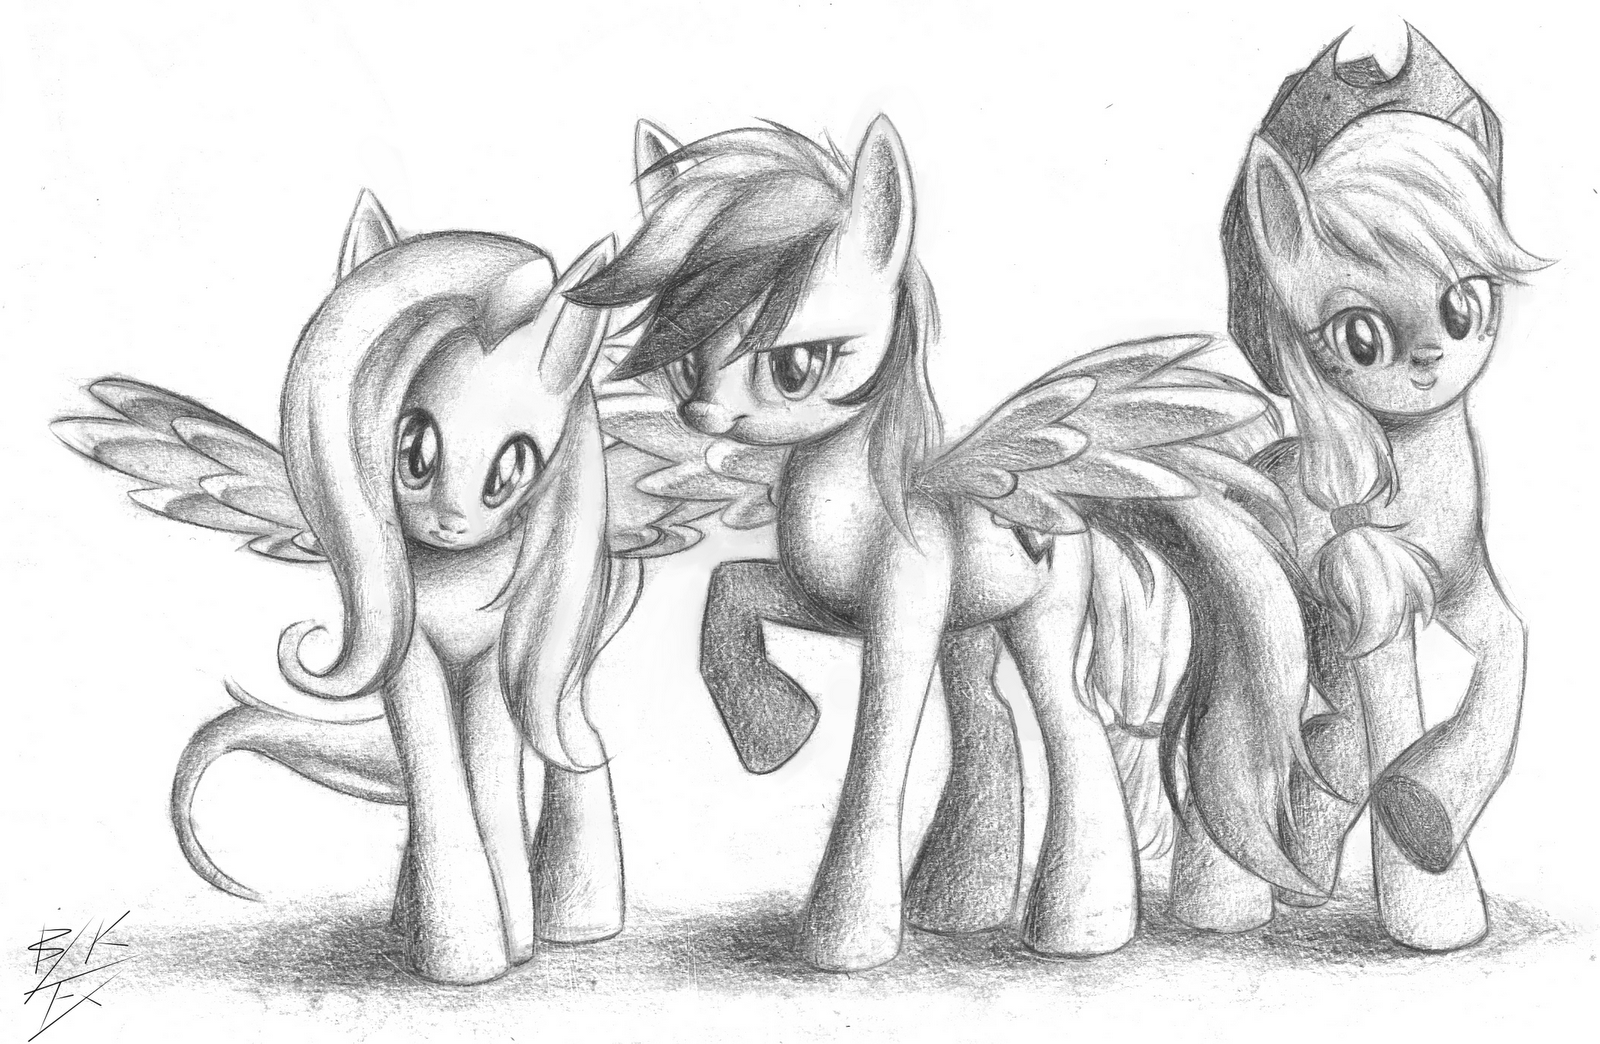 Drawn my little pony pencil drawing Free 11/16/11 Equestria Episodes 25+26